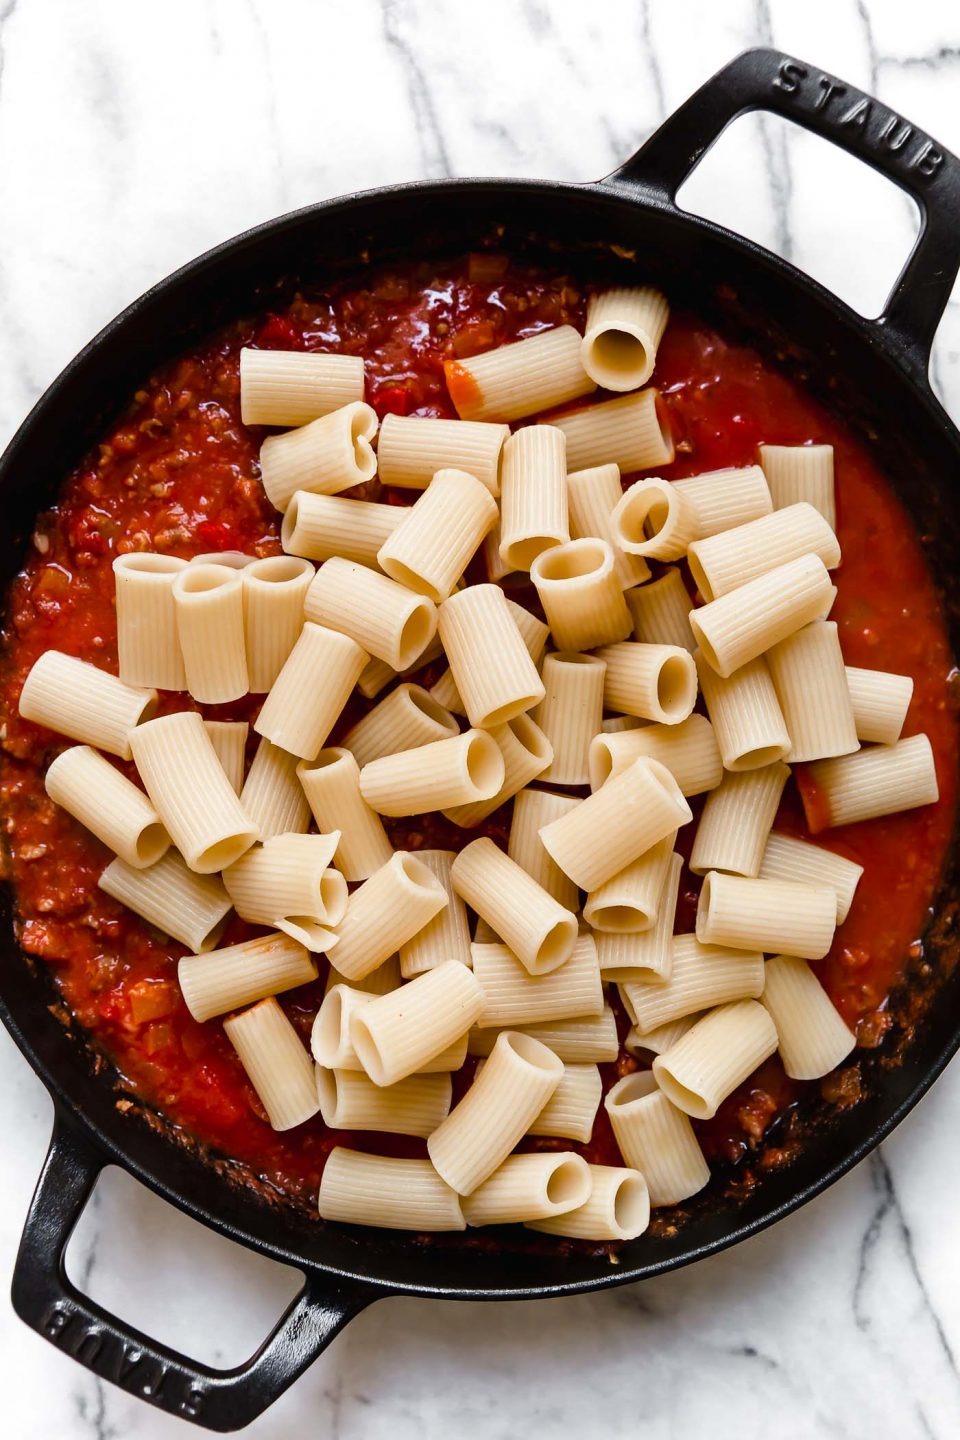 Adding rigatoni pasta to Italian Sausage and peppers pasta sauce in large black skillet.